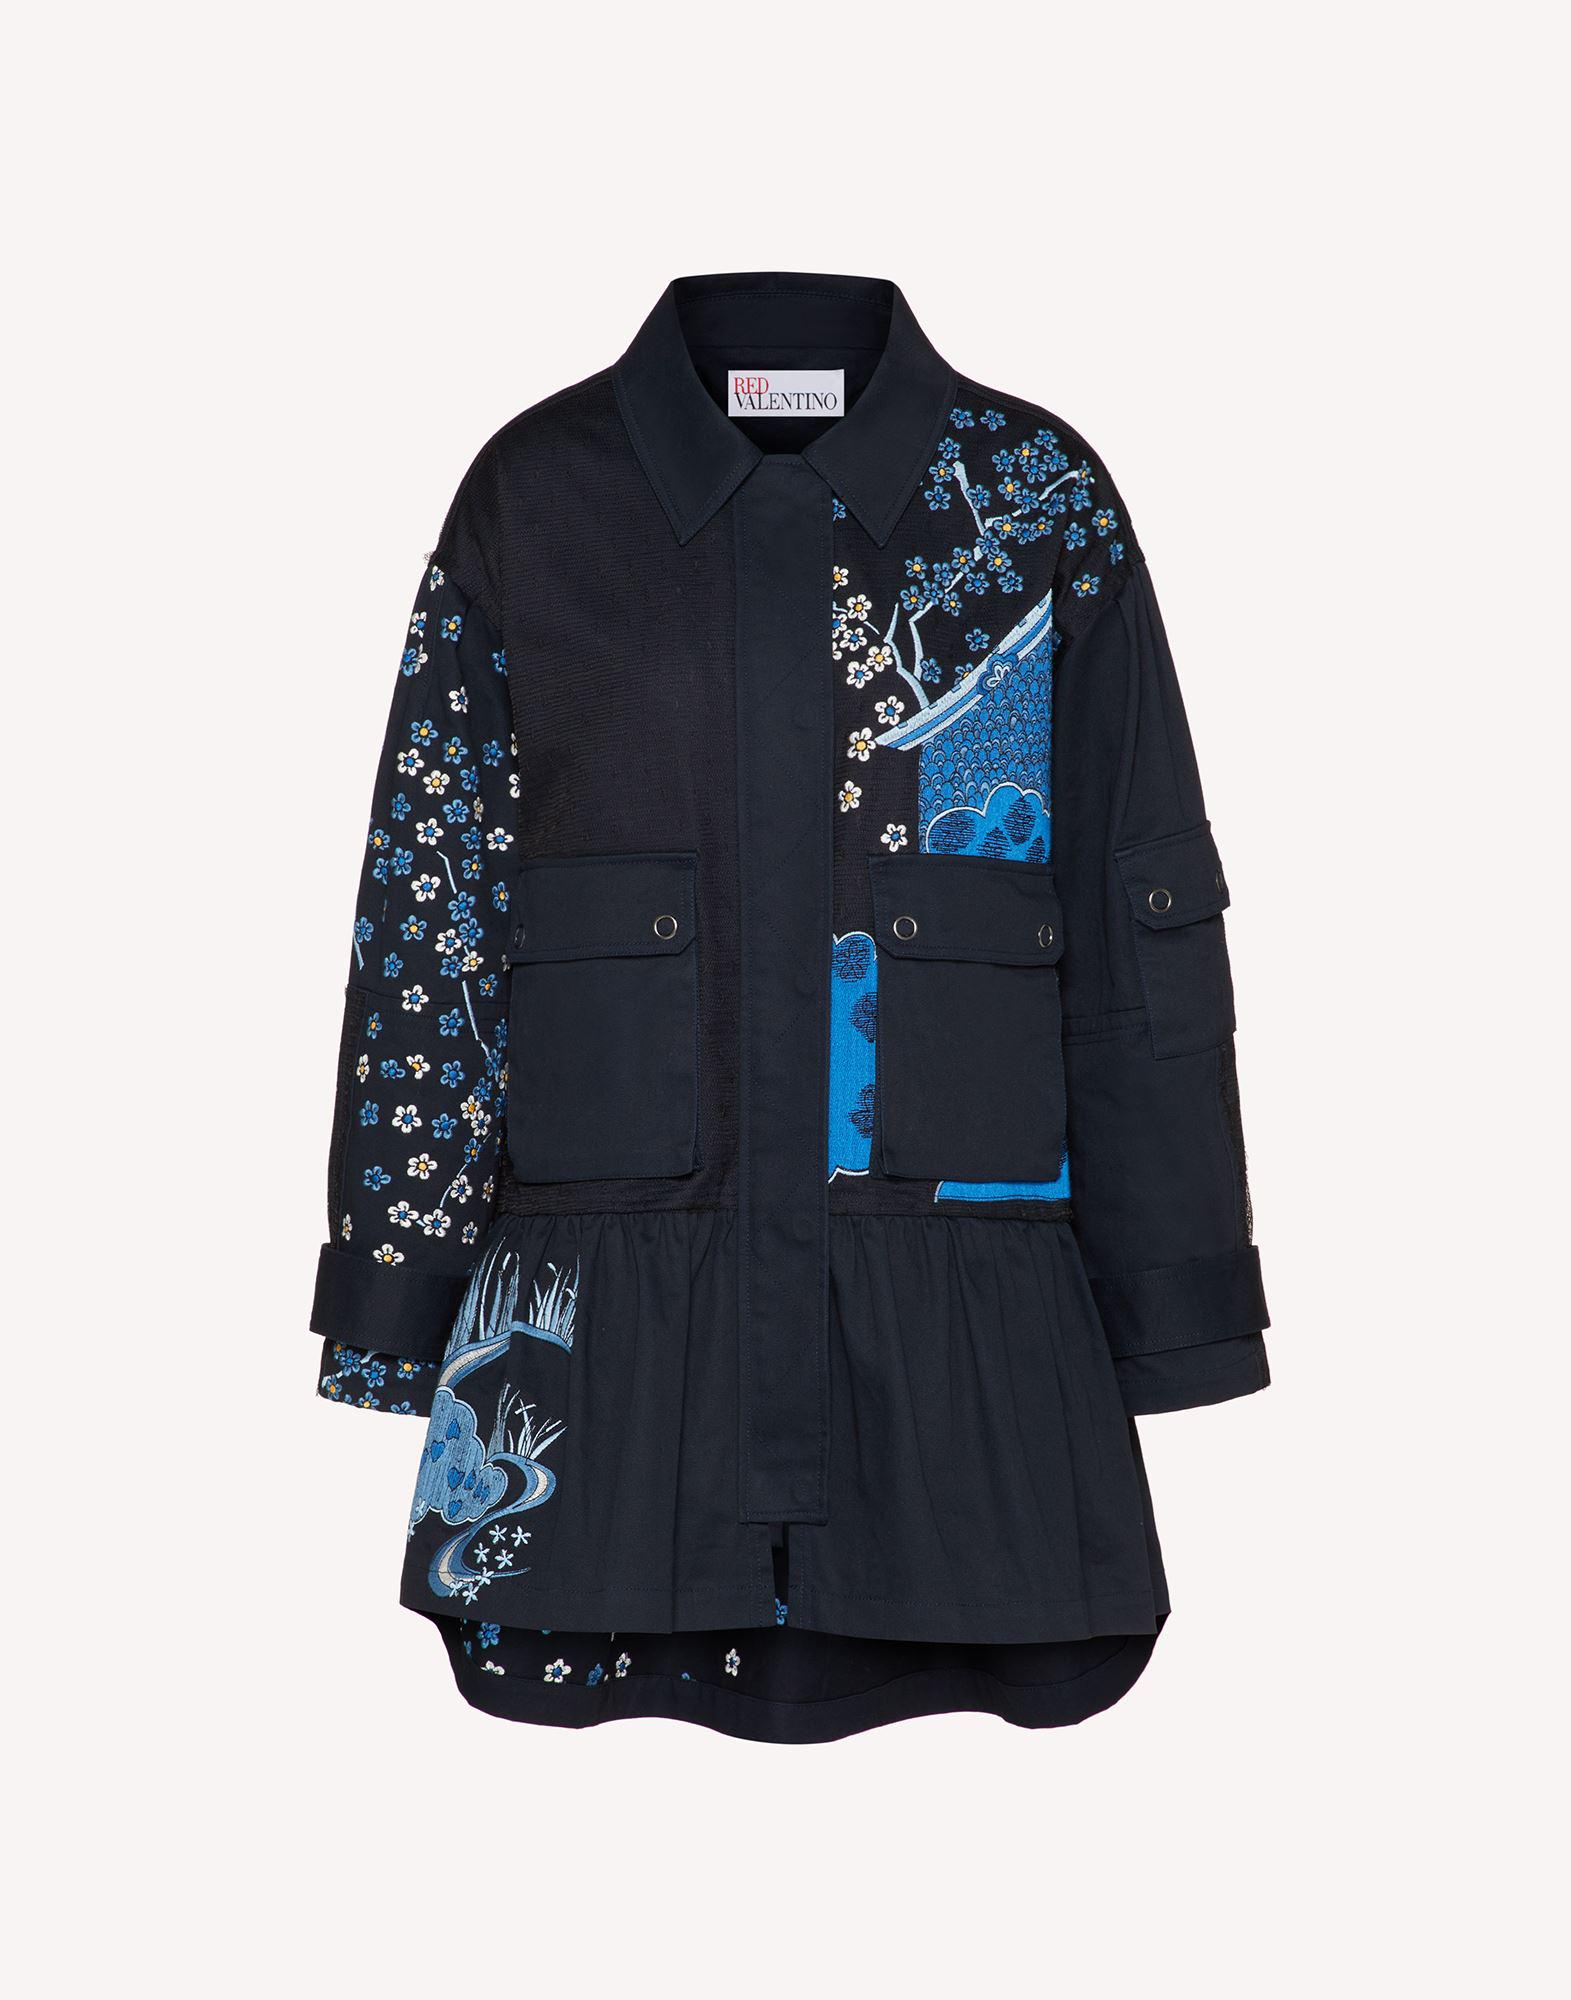 ASIAN TOILE DE JOUY EMBROIDERED PEA COAT 4